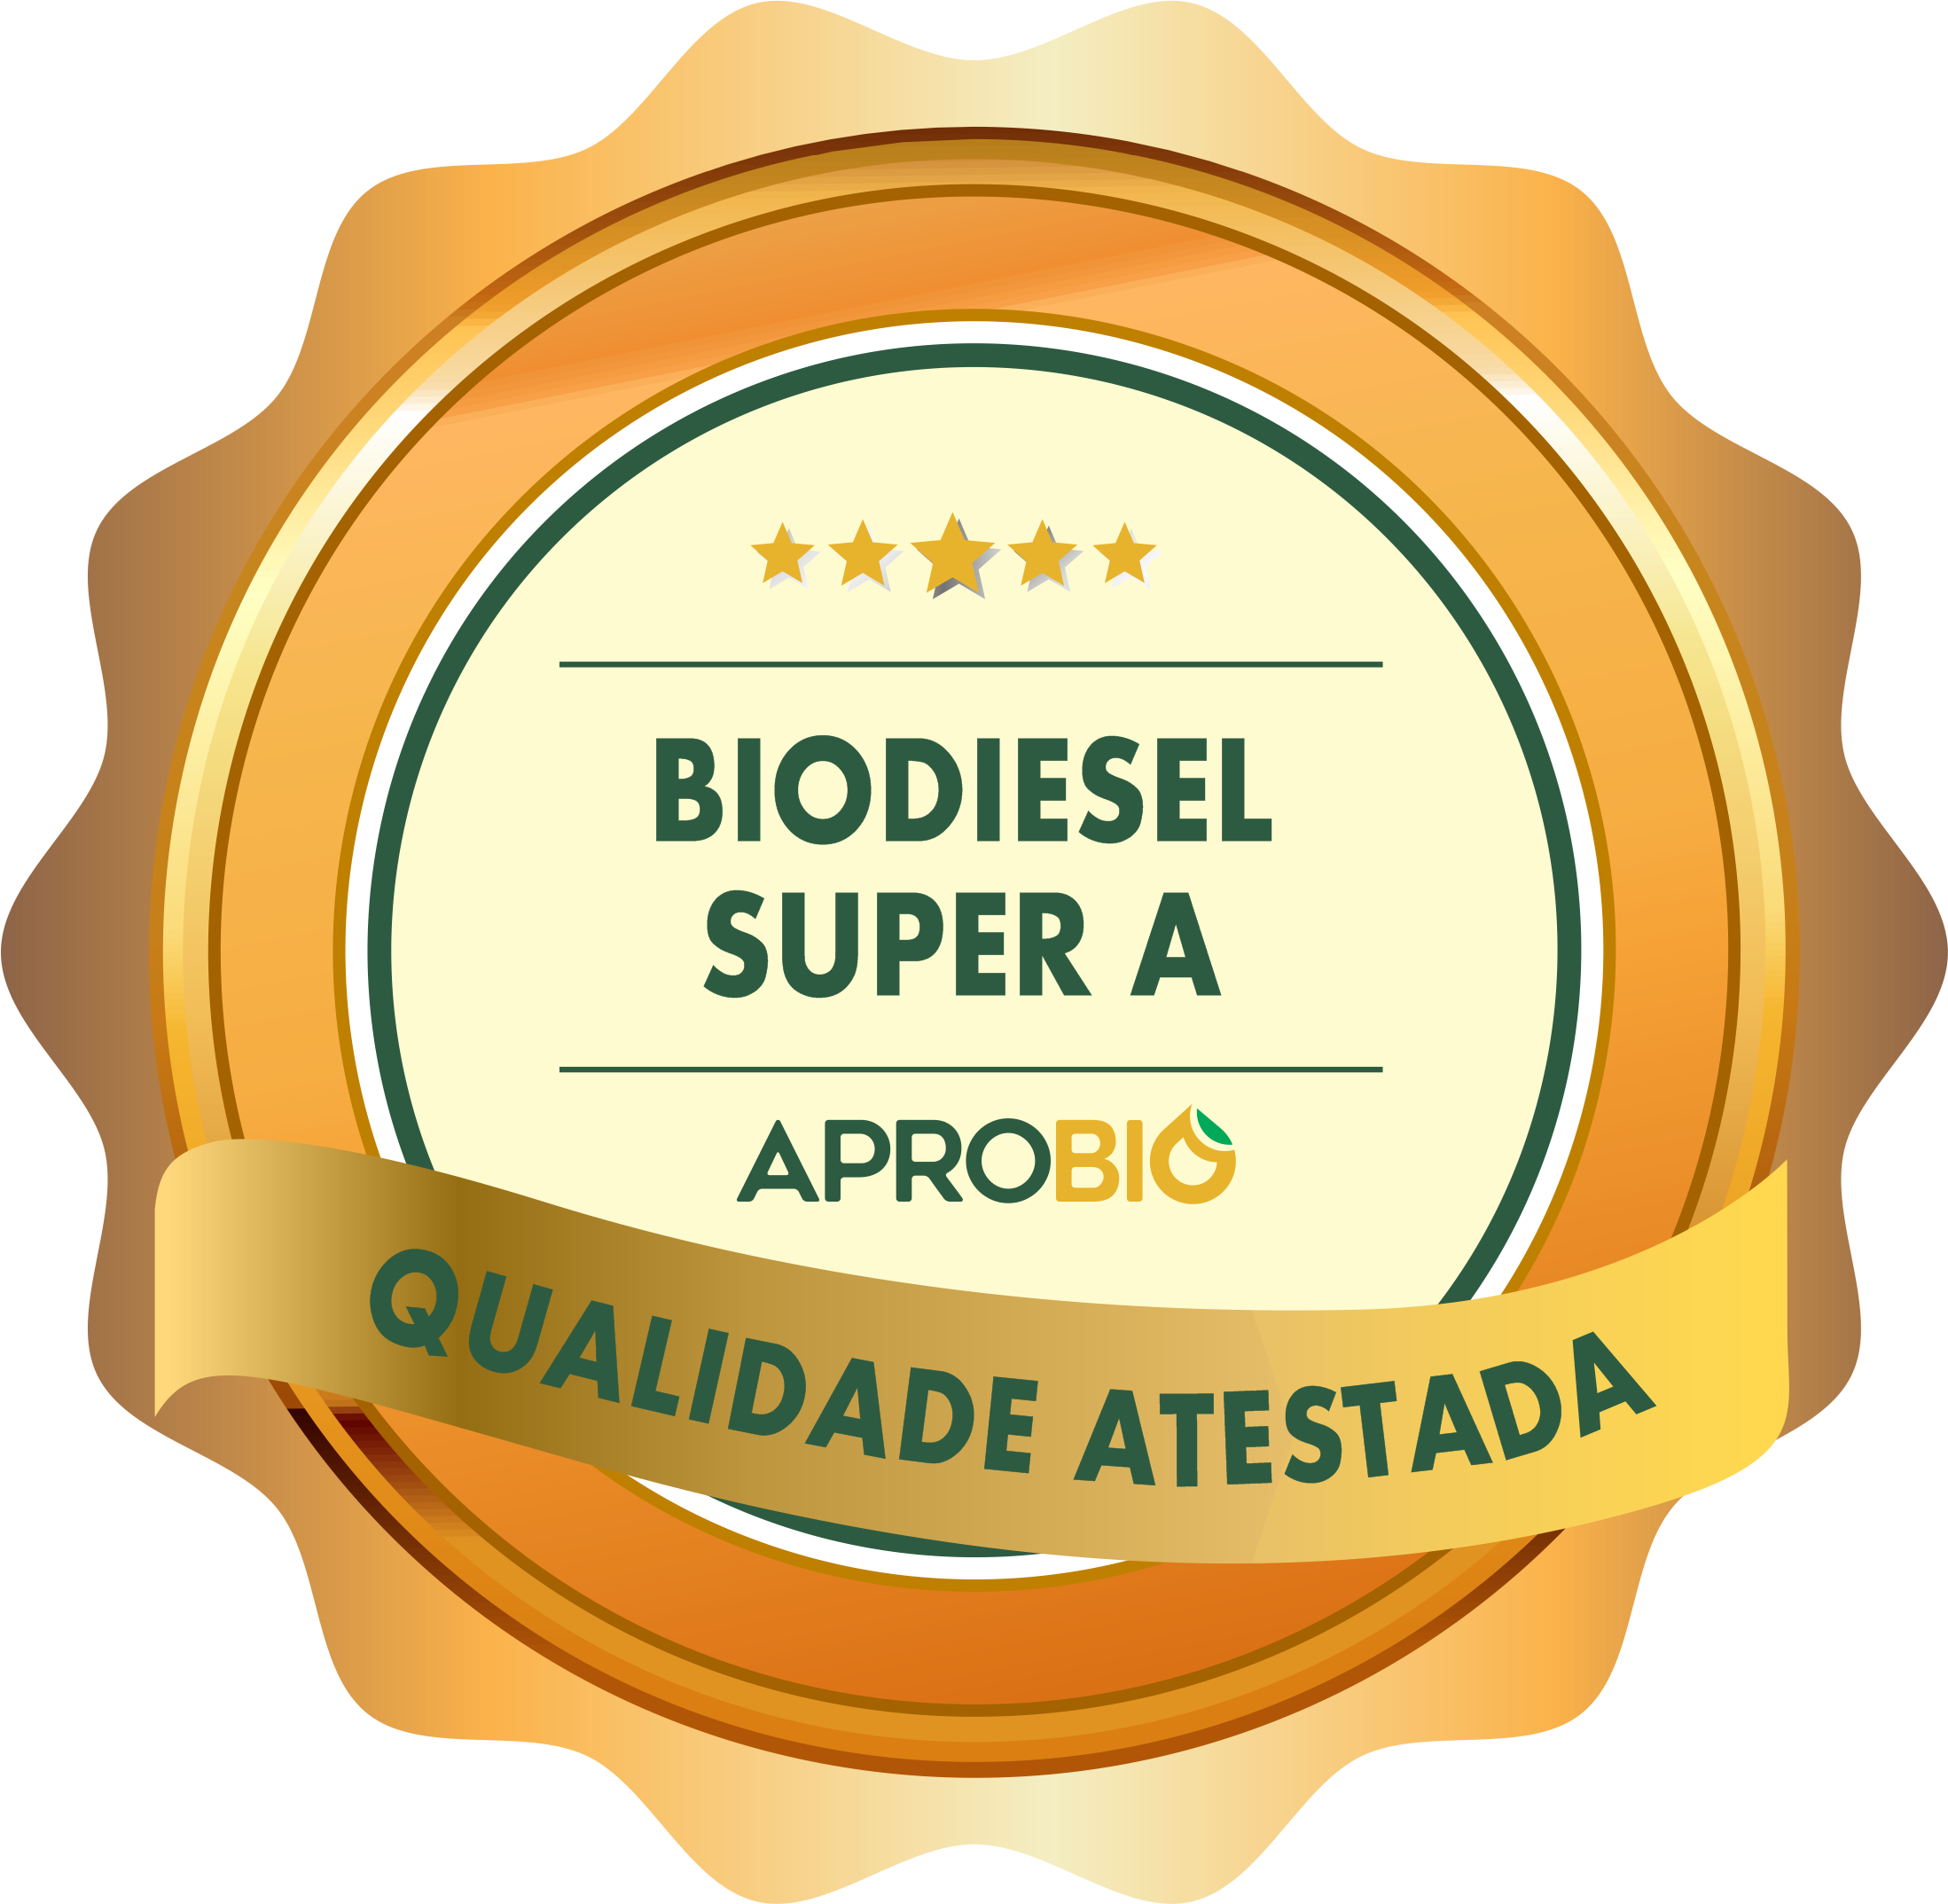 APROBIO Quality Seal attests high standard of biodiesel produced by BSBIOS